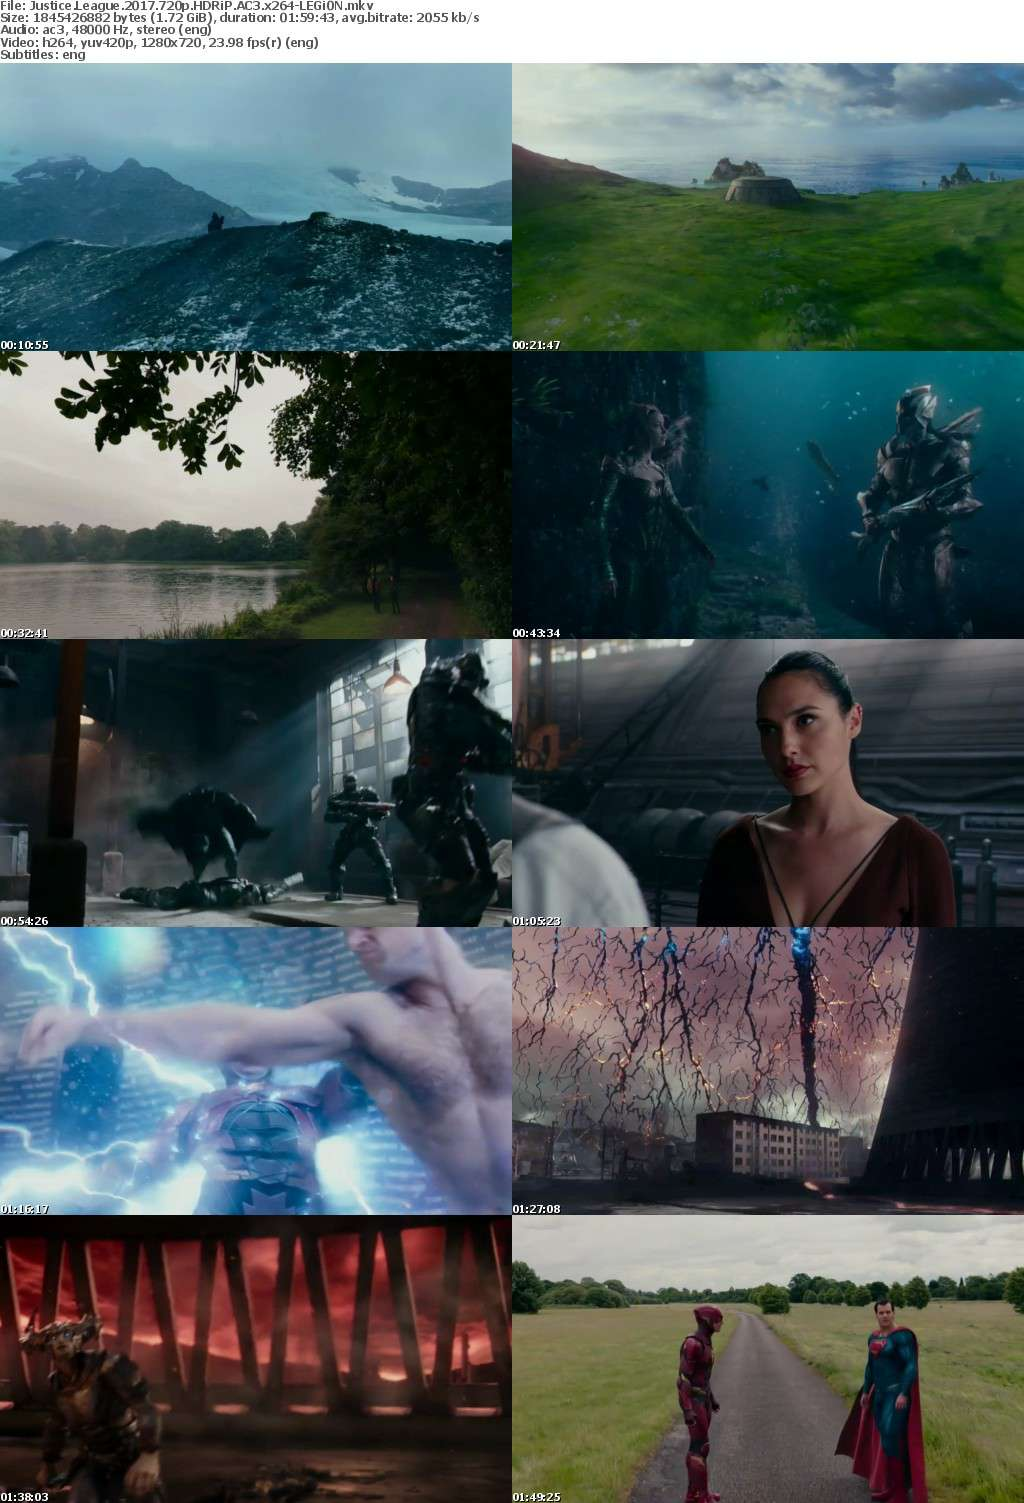 Justice League 2017 720p HDRiP AC3 x264-LEGi0N